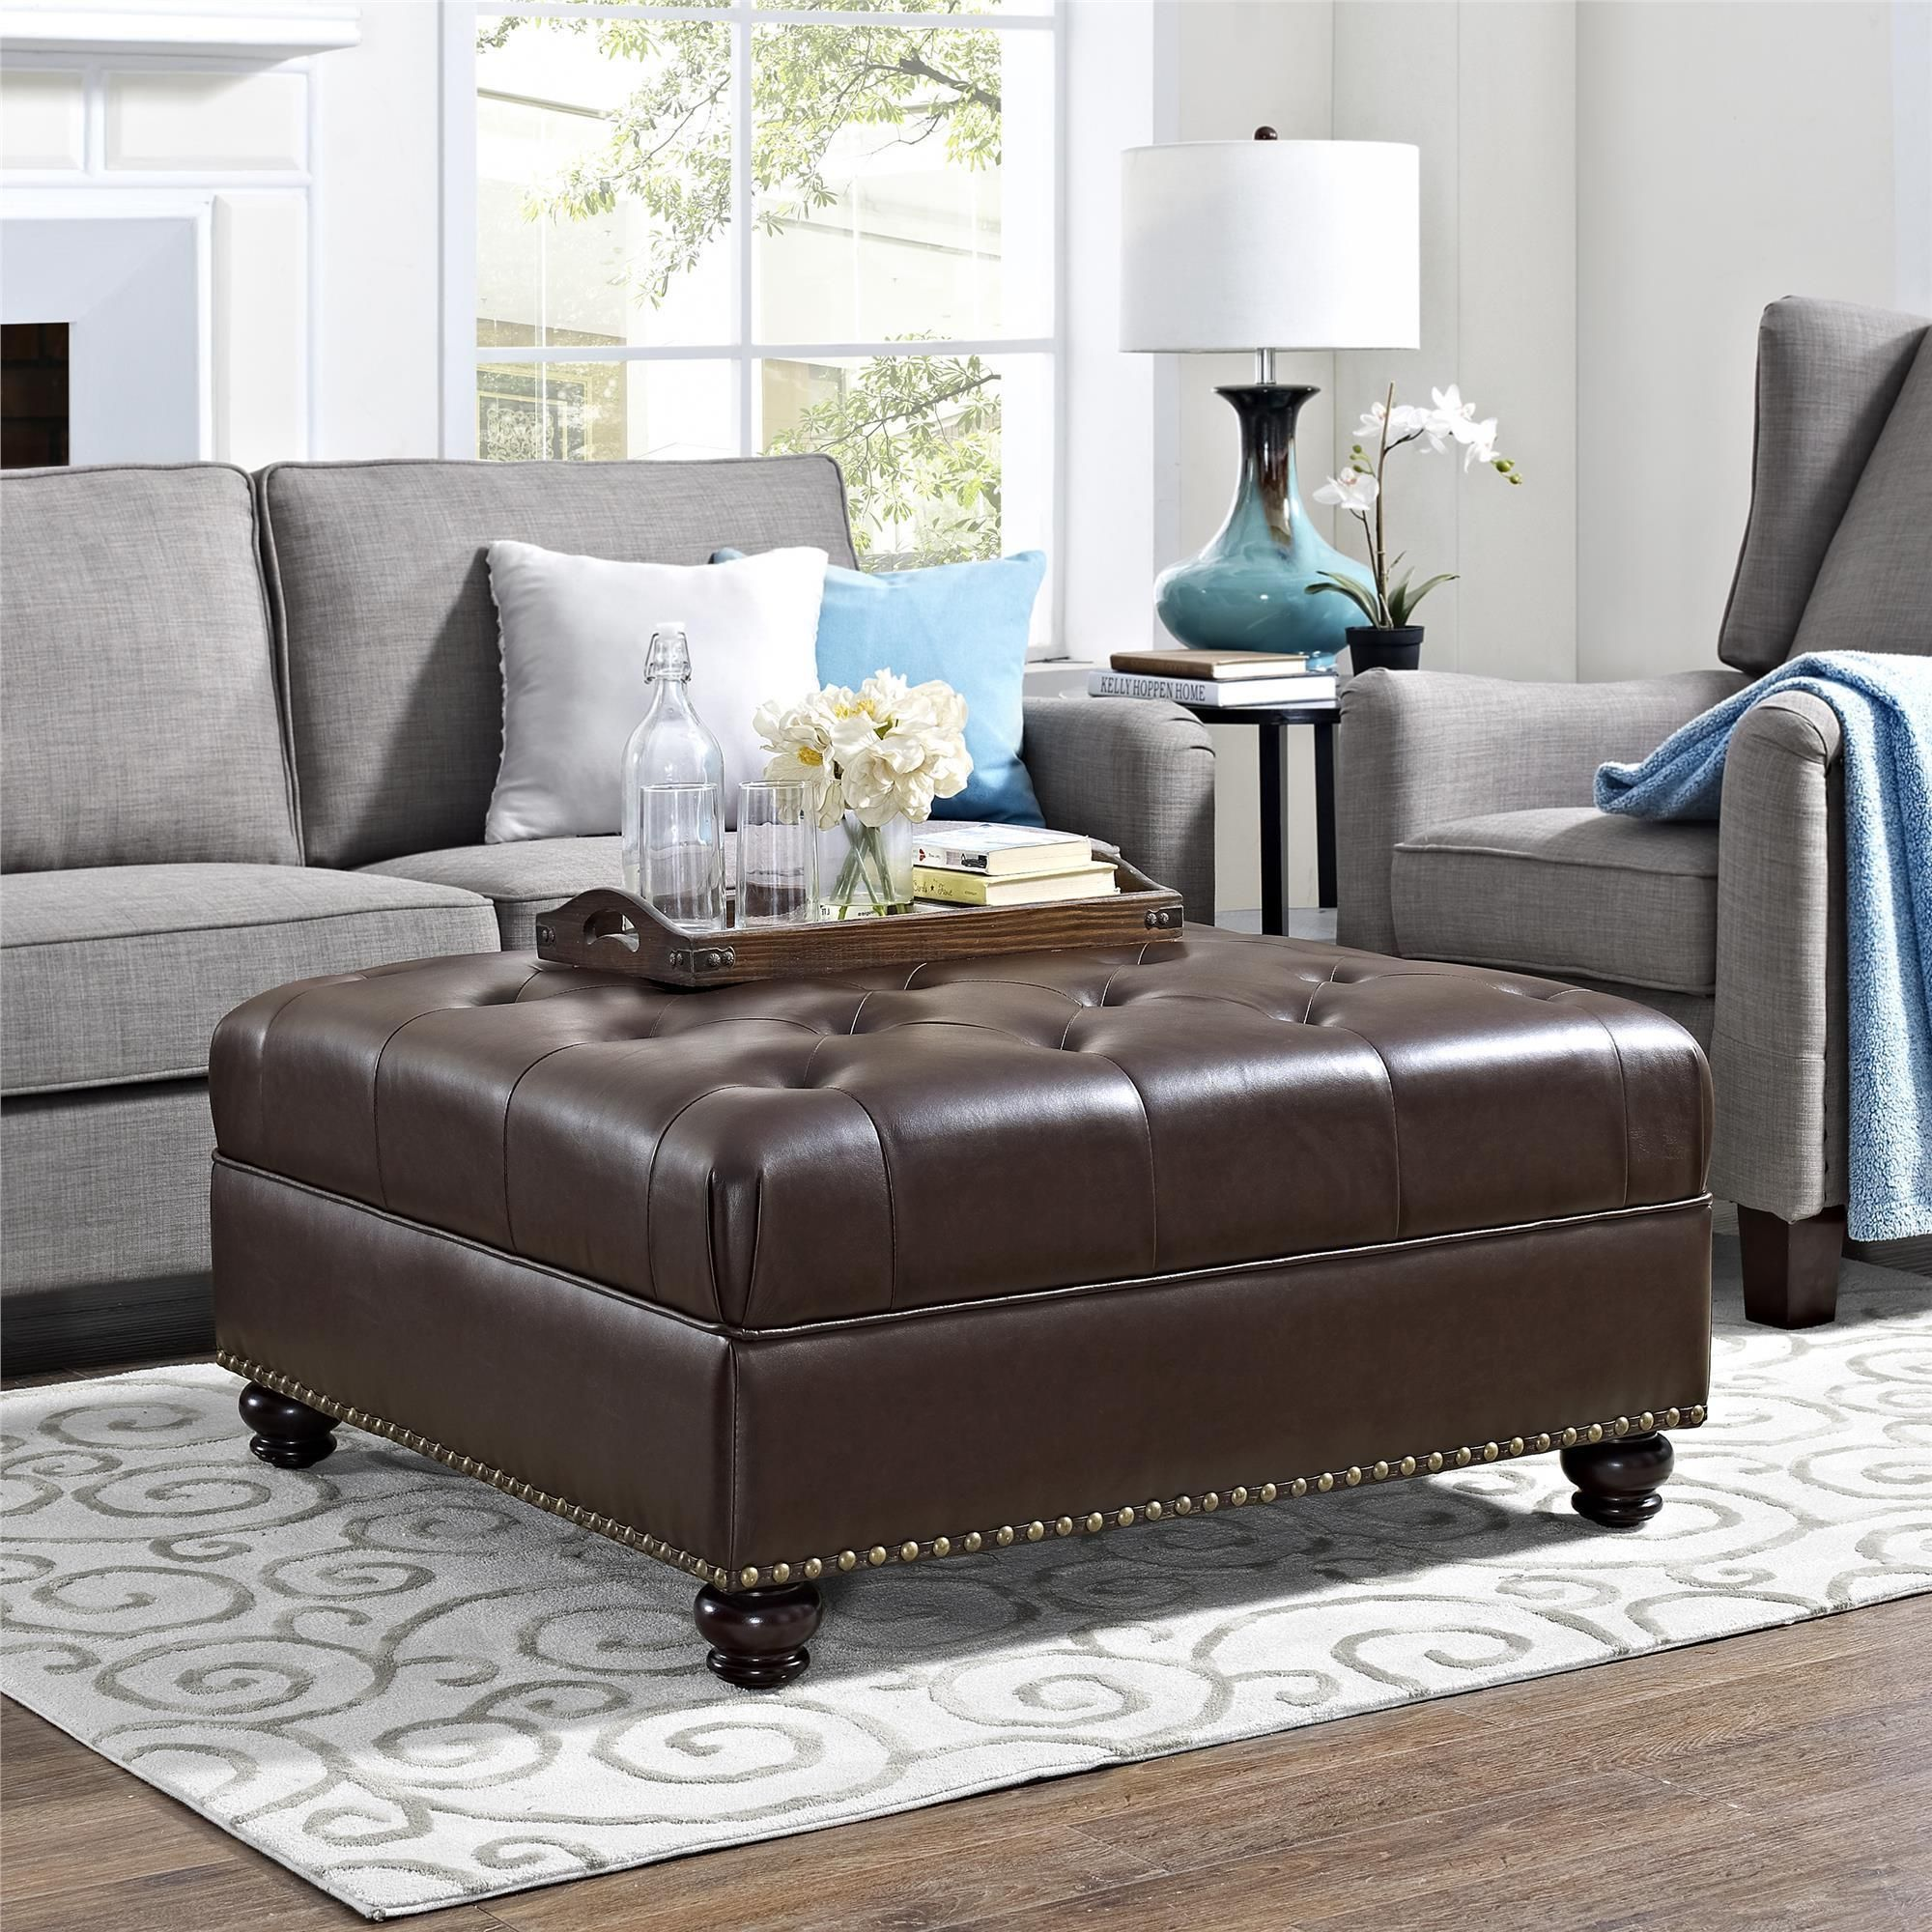 Excellent Avenue Greene Dorel Living Maxwell Brown Tufted Ottoman Pabps2019 Chair Design Images Pabps2019Com